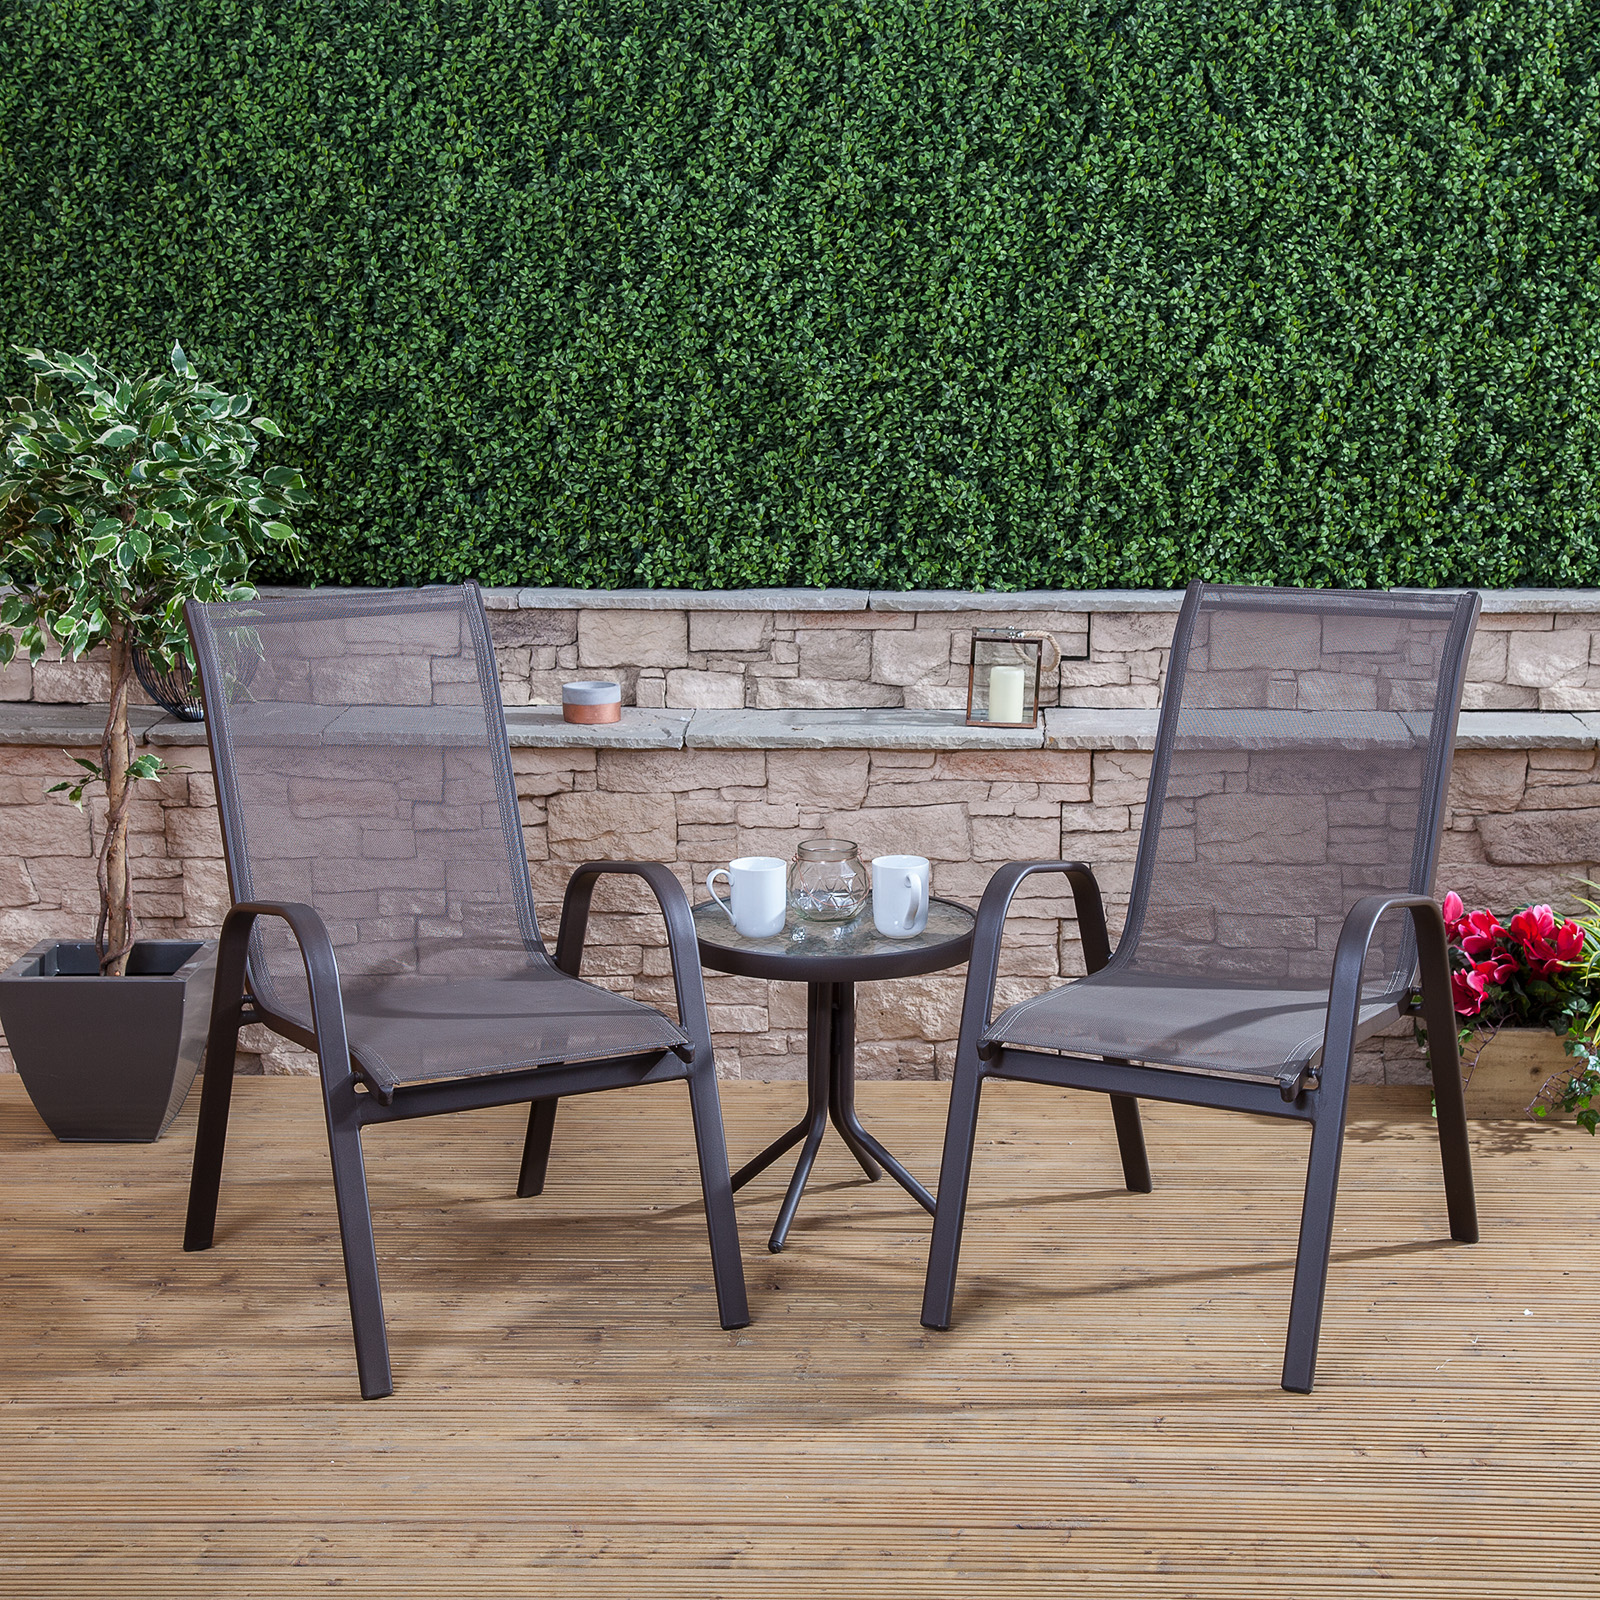 Garden table chairs bistro set outdoor patio furniture for Balcony patio set